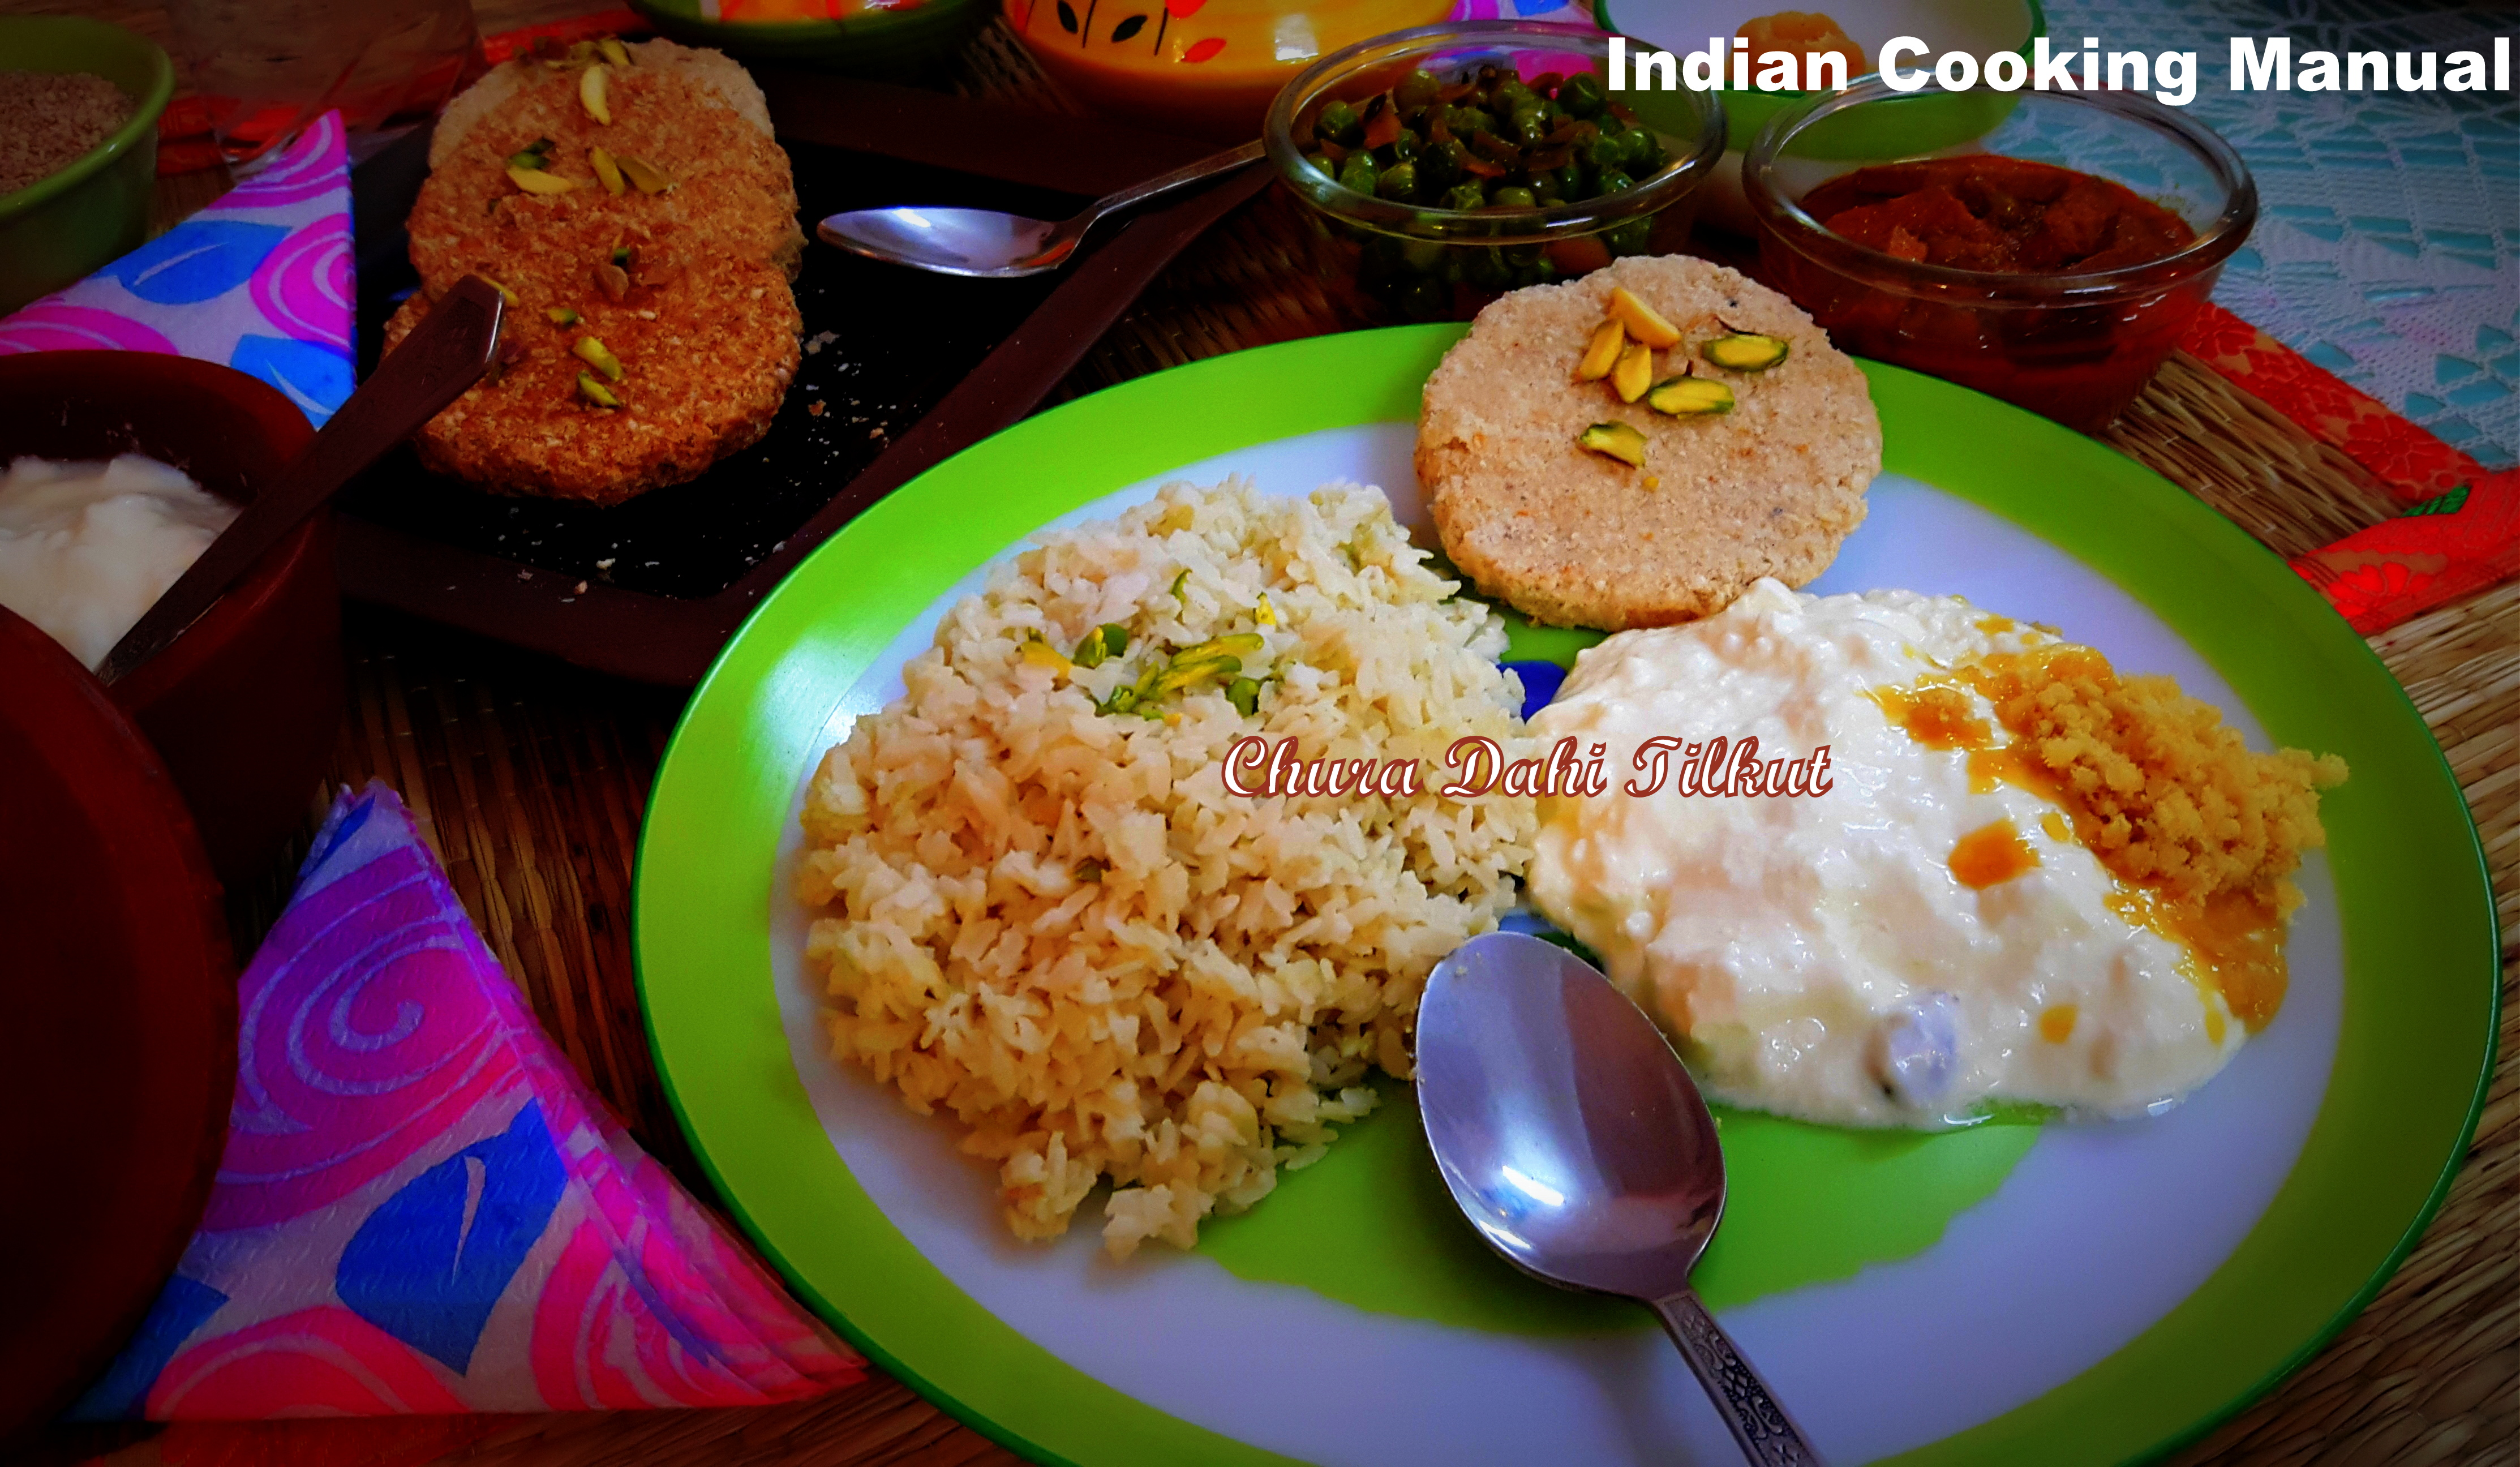 Chura Dahi Tilkut (Beaten Rice, Yogurt with pounded Sesame Sweet)